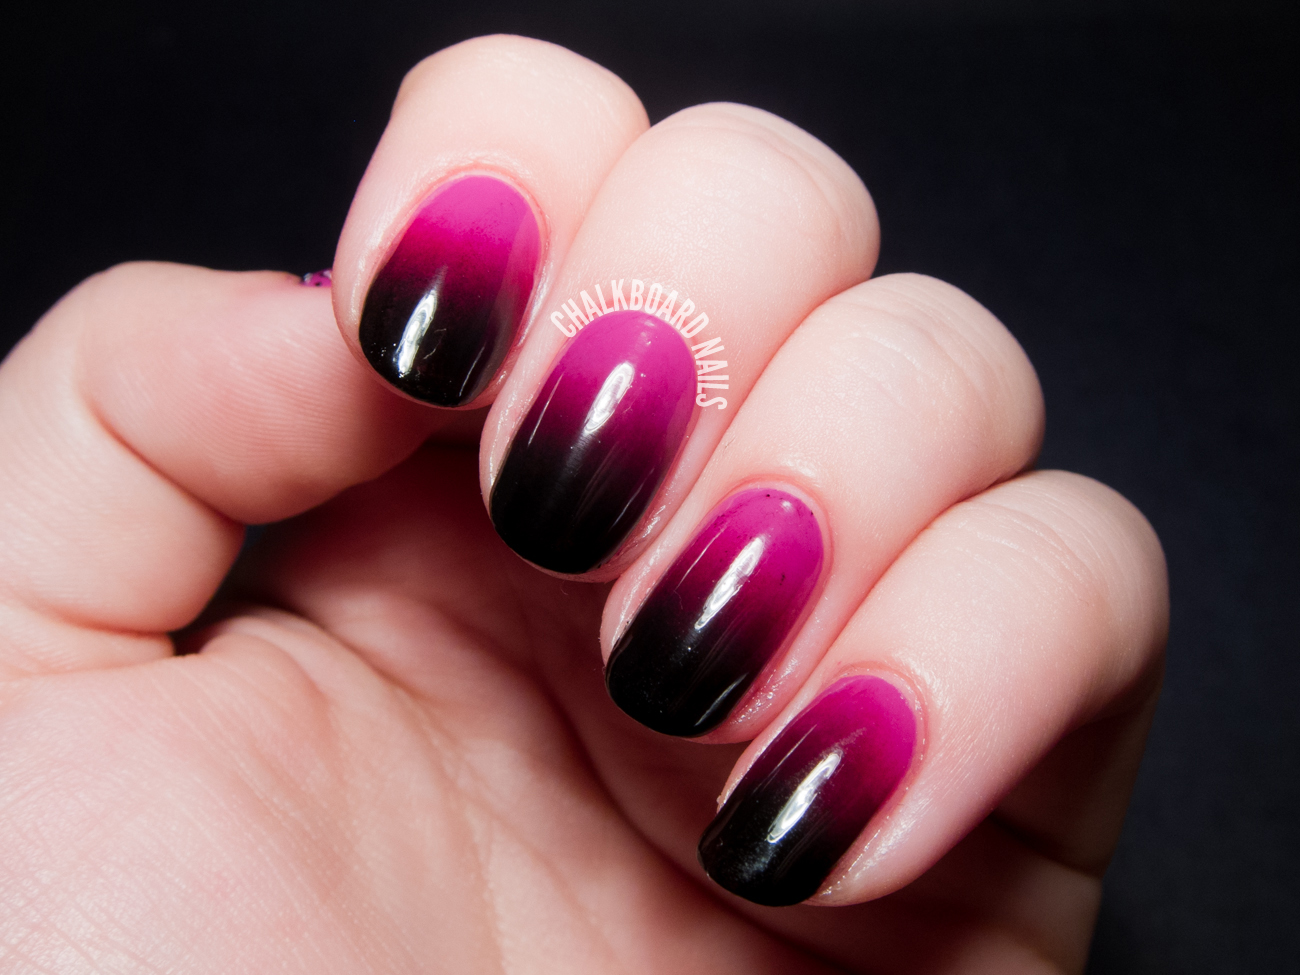 Vampy pink gradient by @chalkboardnails